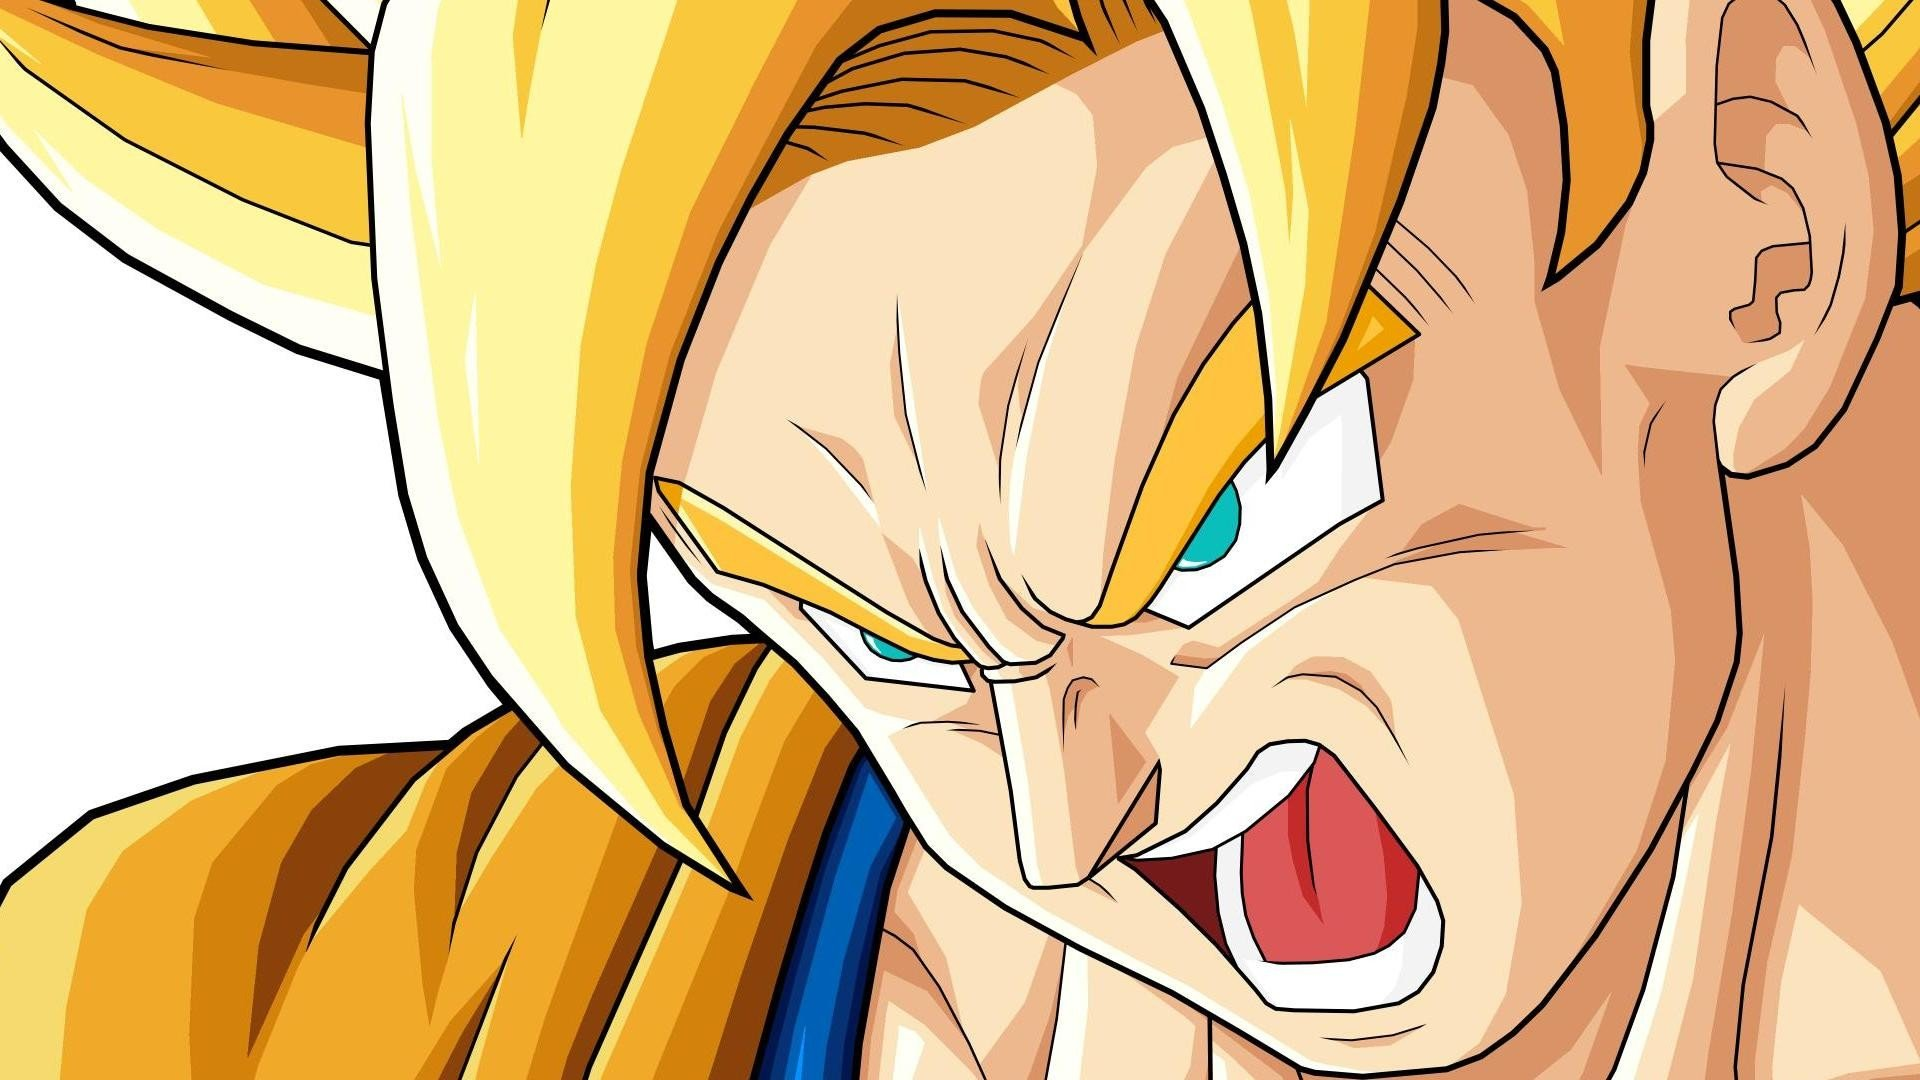 Goku Dragon Wallpaper 1920x1080 Goku Dragon Ball Z 1920x1080